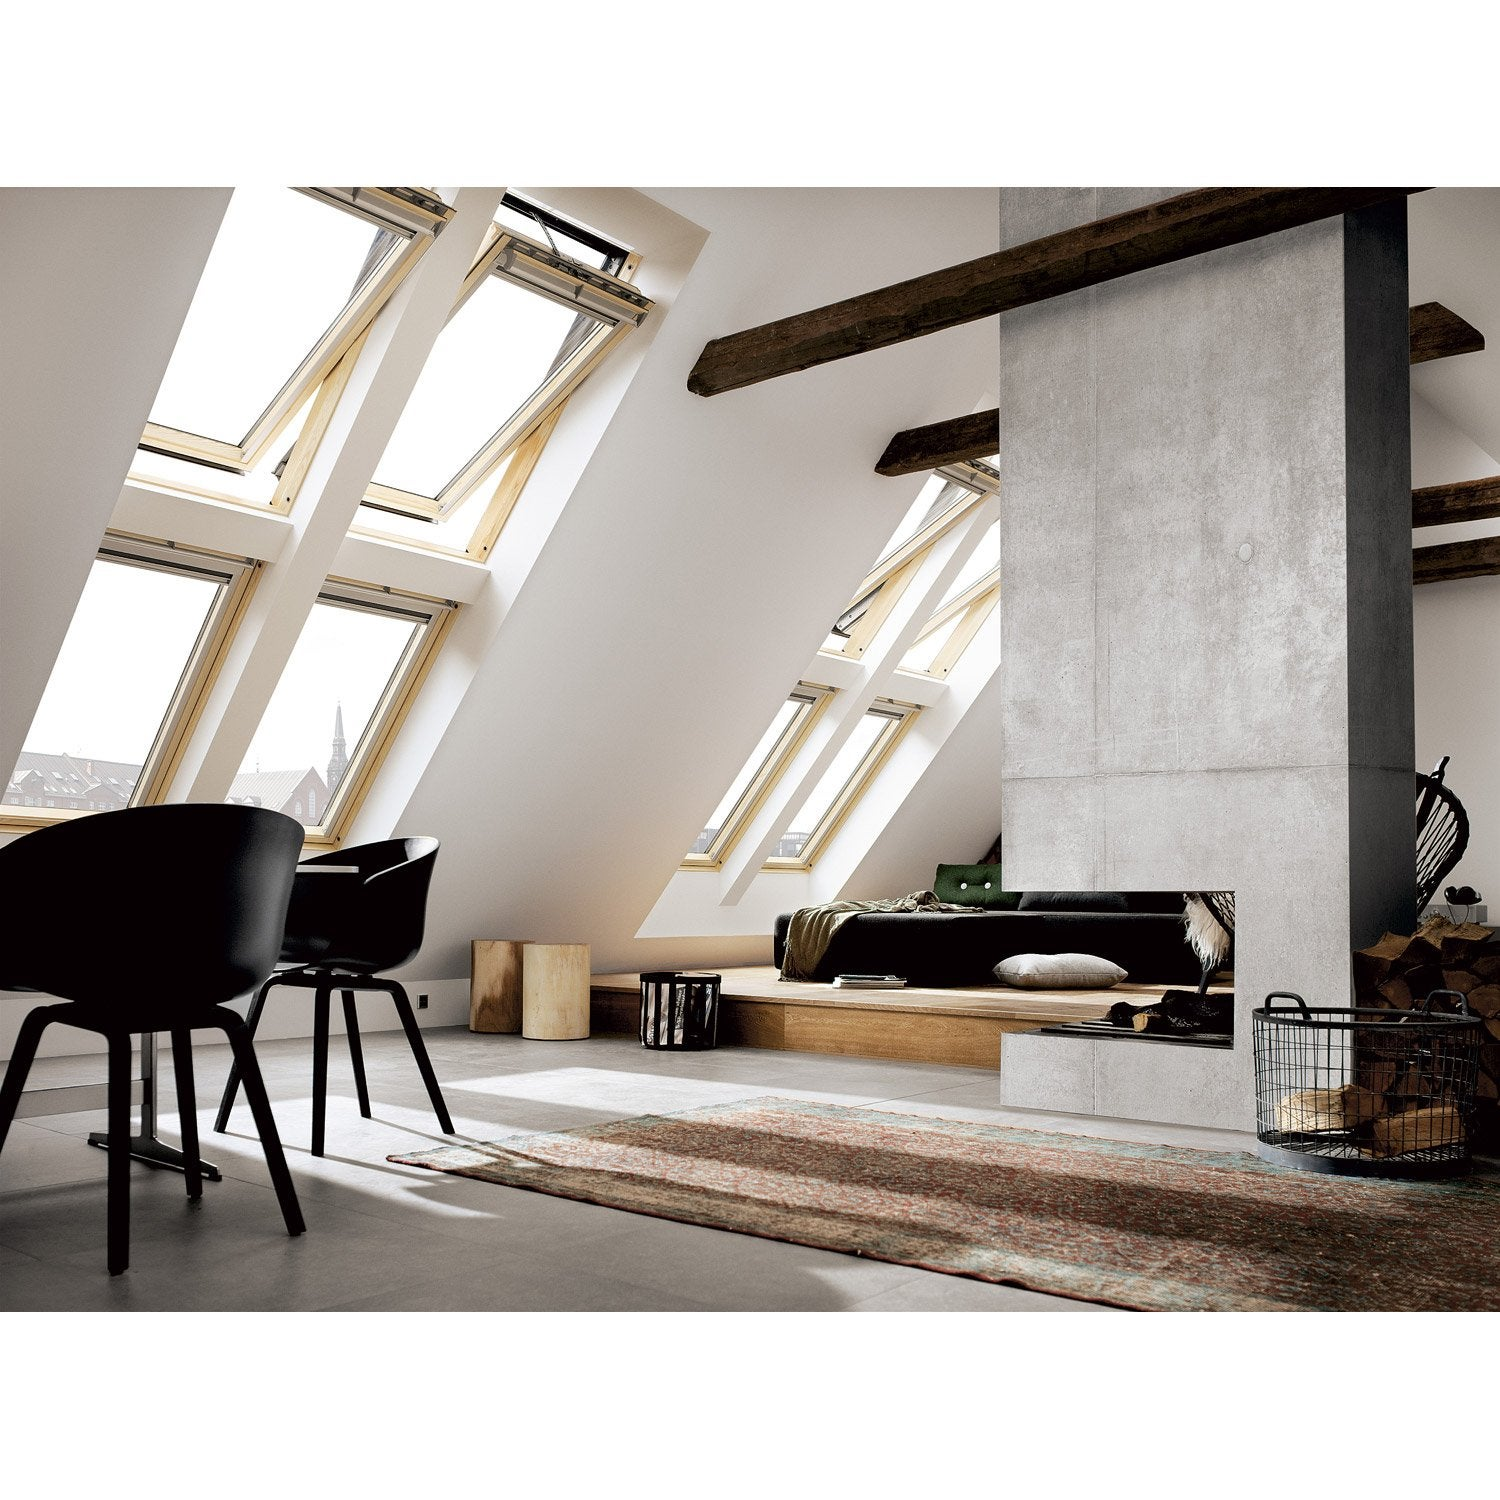 velux ggl mk04 tout confort integra par rotation 78 x 98. Black Bedroom Furniture Sets. Home Design Ideas